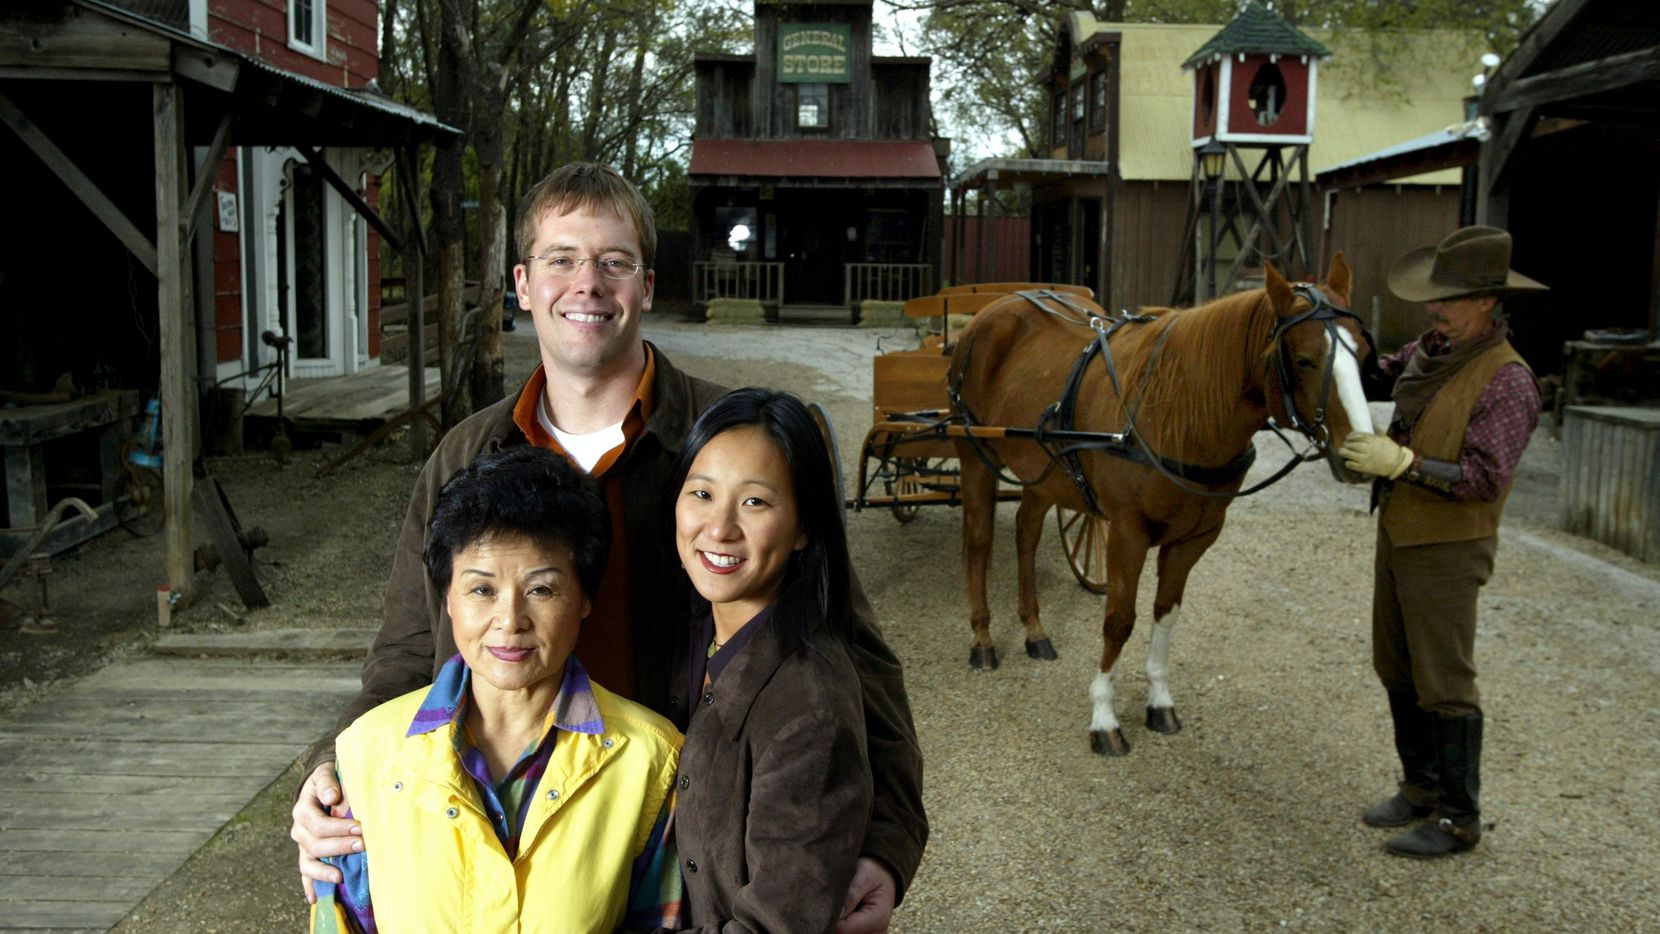 President of Storybook Ranch Jeong Nim Kim (lower left), with her daughter Lynn Miller and son-in-law Brandon Miller, who were general managers for the authentic multi-million dollar Western town assembled in 1981 in McKinney.  Their 'Ranch Cowboy' Gary Drake, far right, nuzzles with his horse Mississippi.